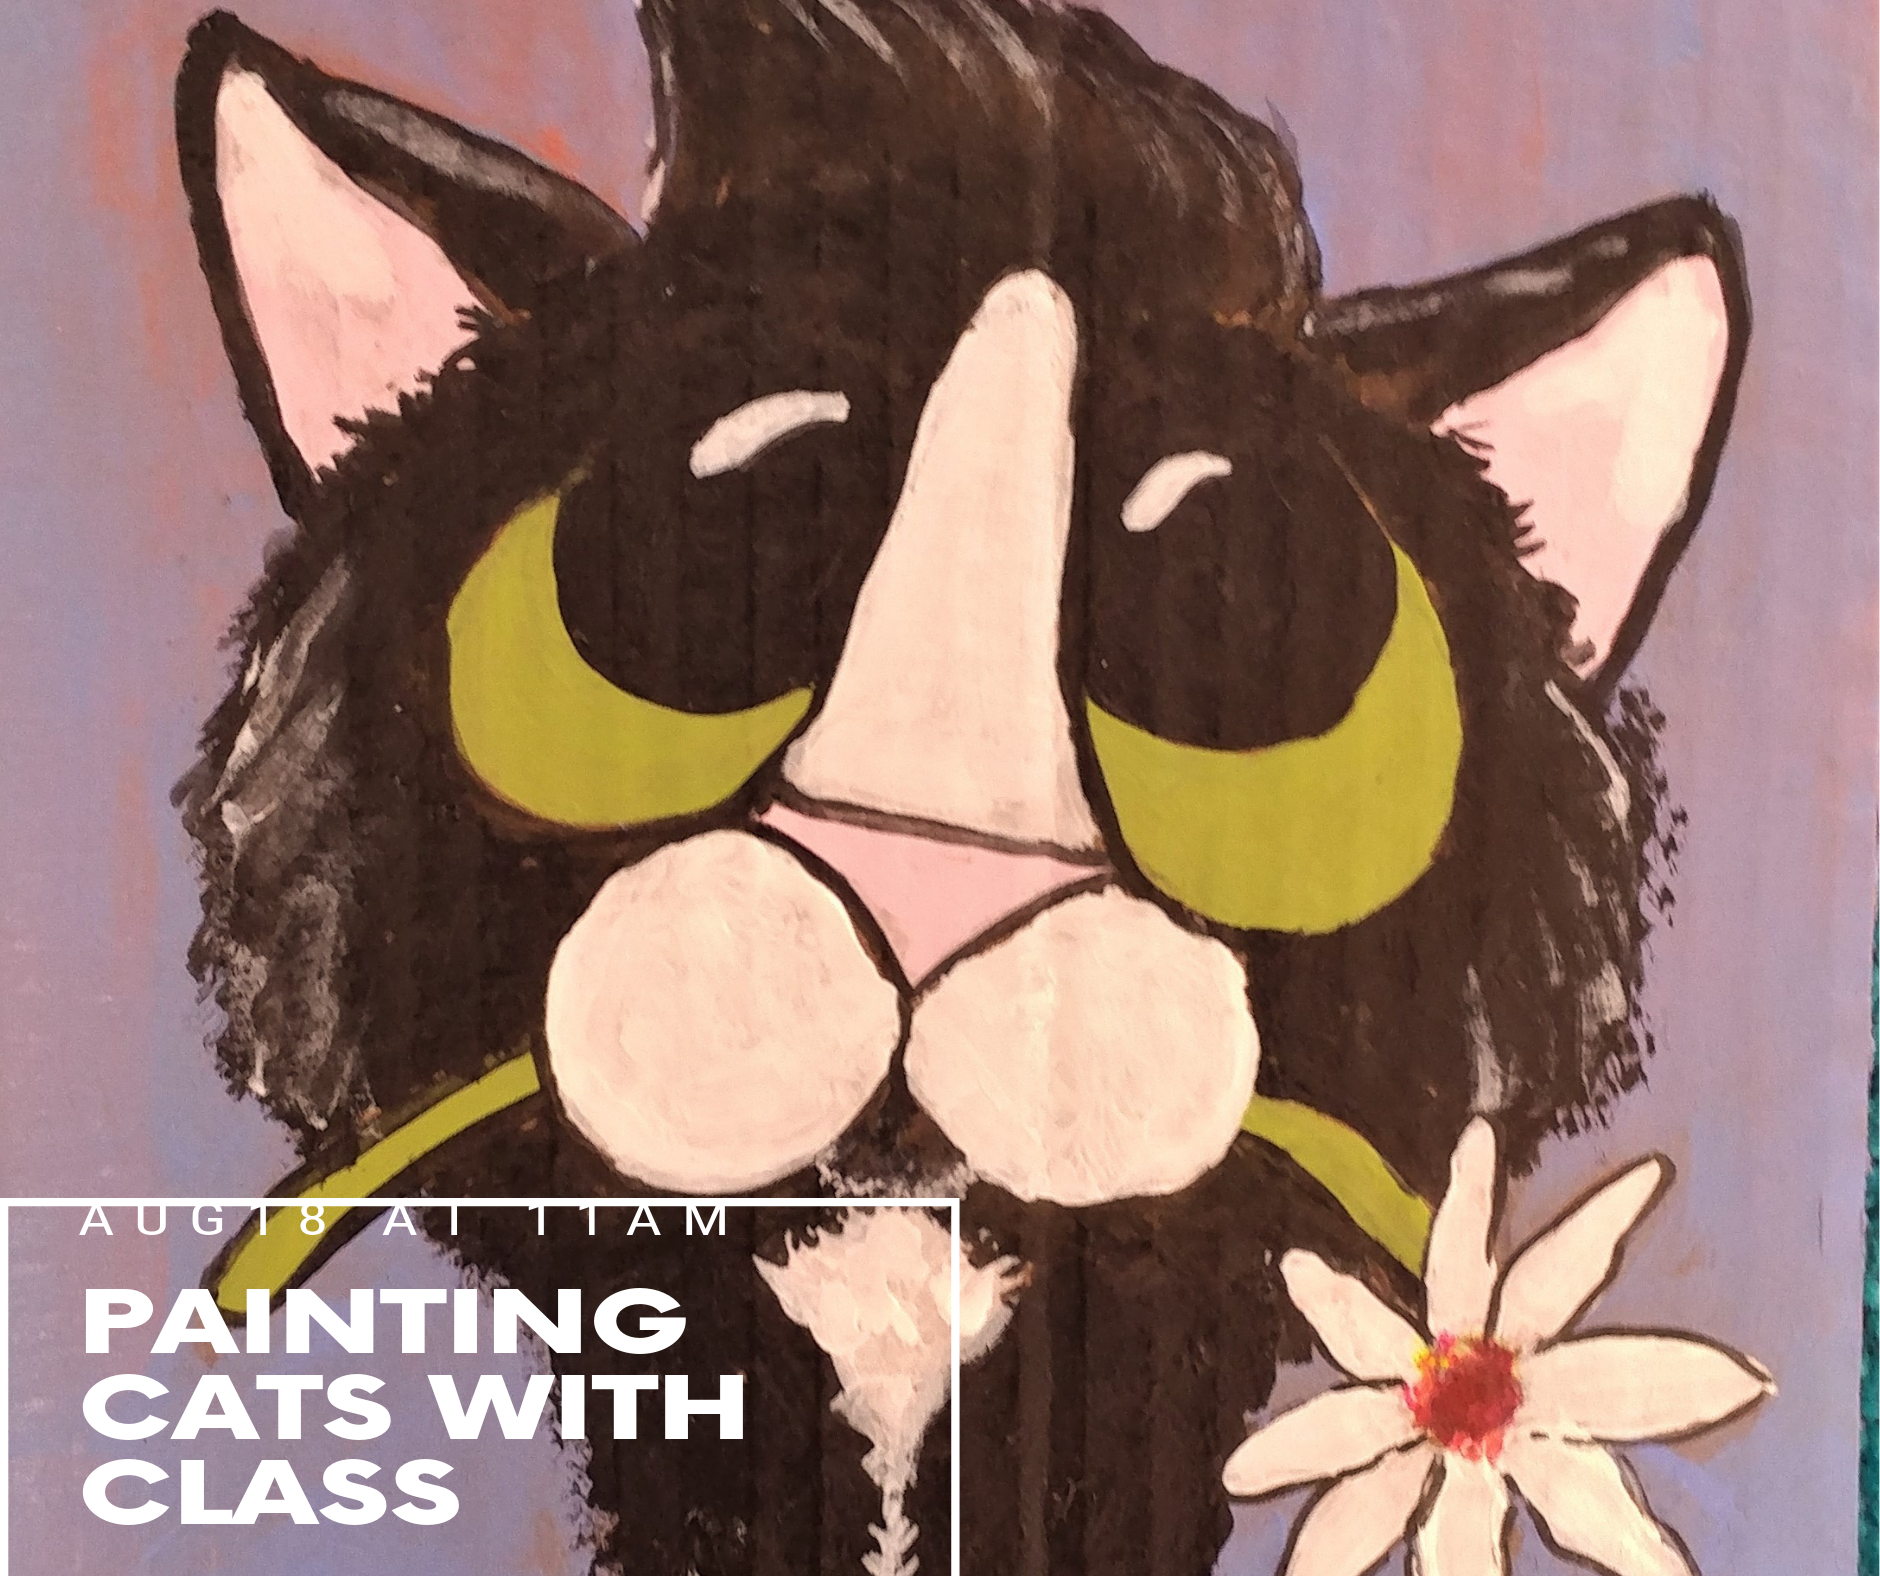 Painting cats with class.png